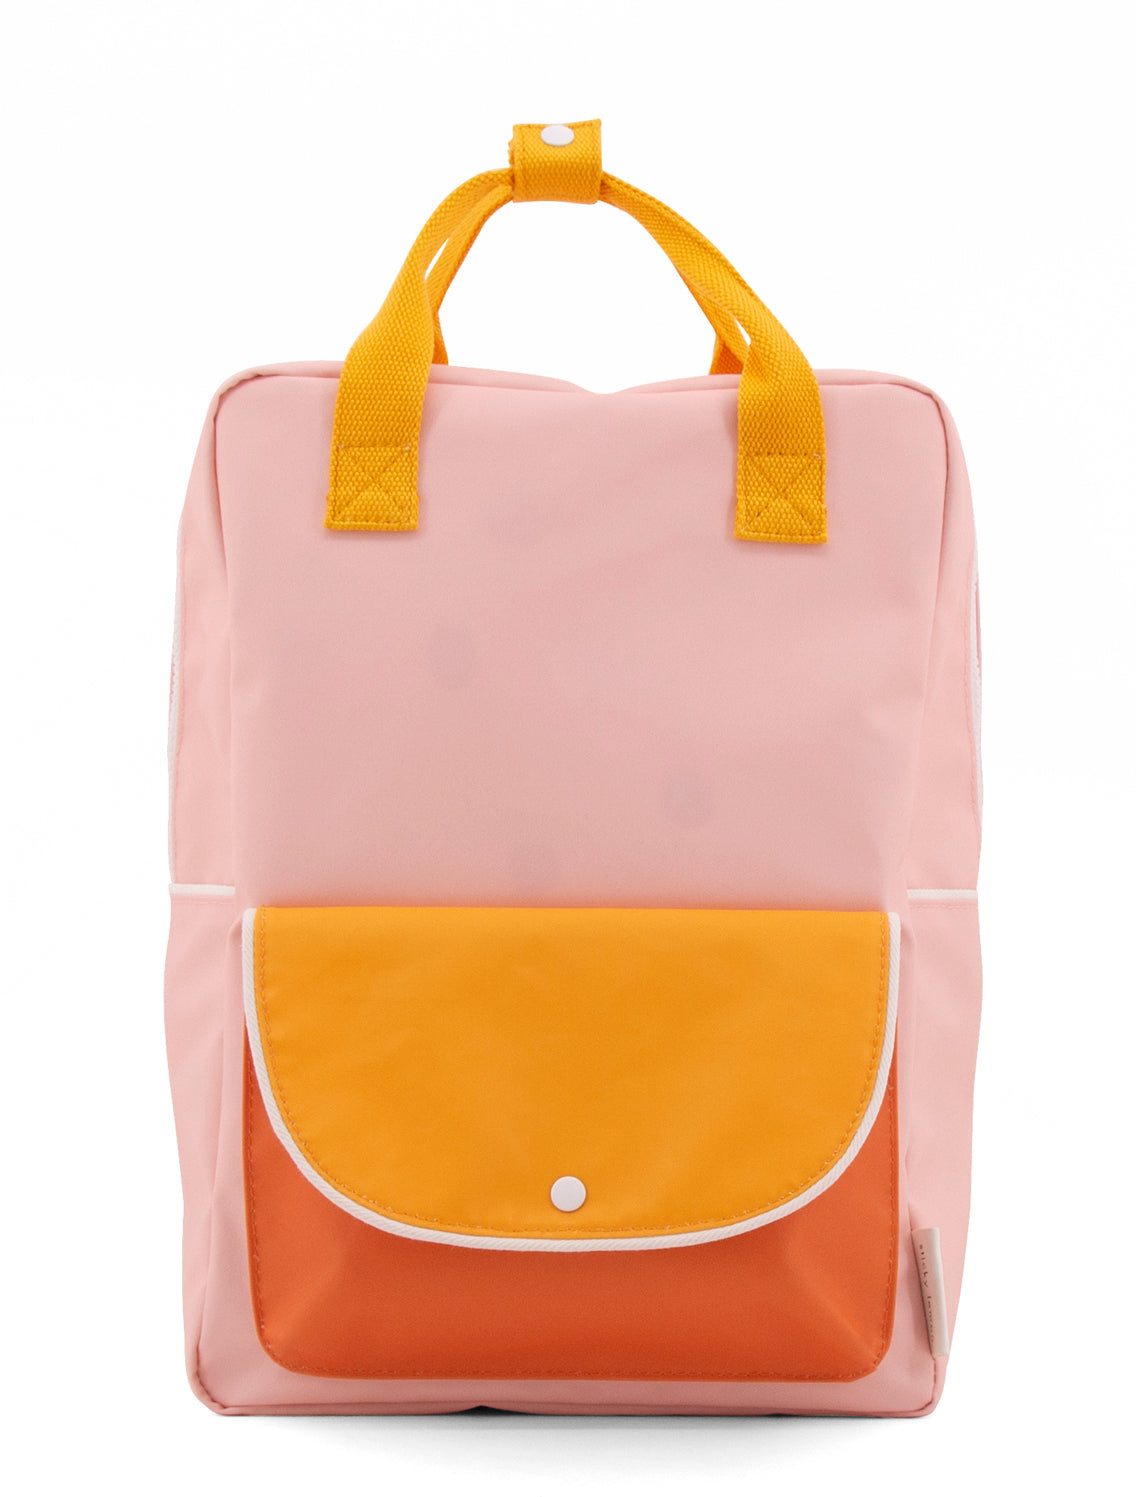 Backpack large wanderer candy pink + sunny yellow + carrot orange -Sticky Lemon